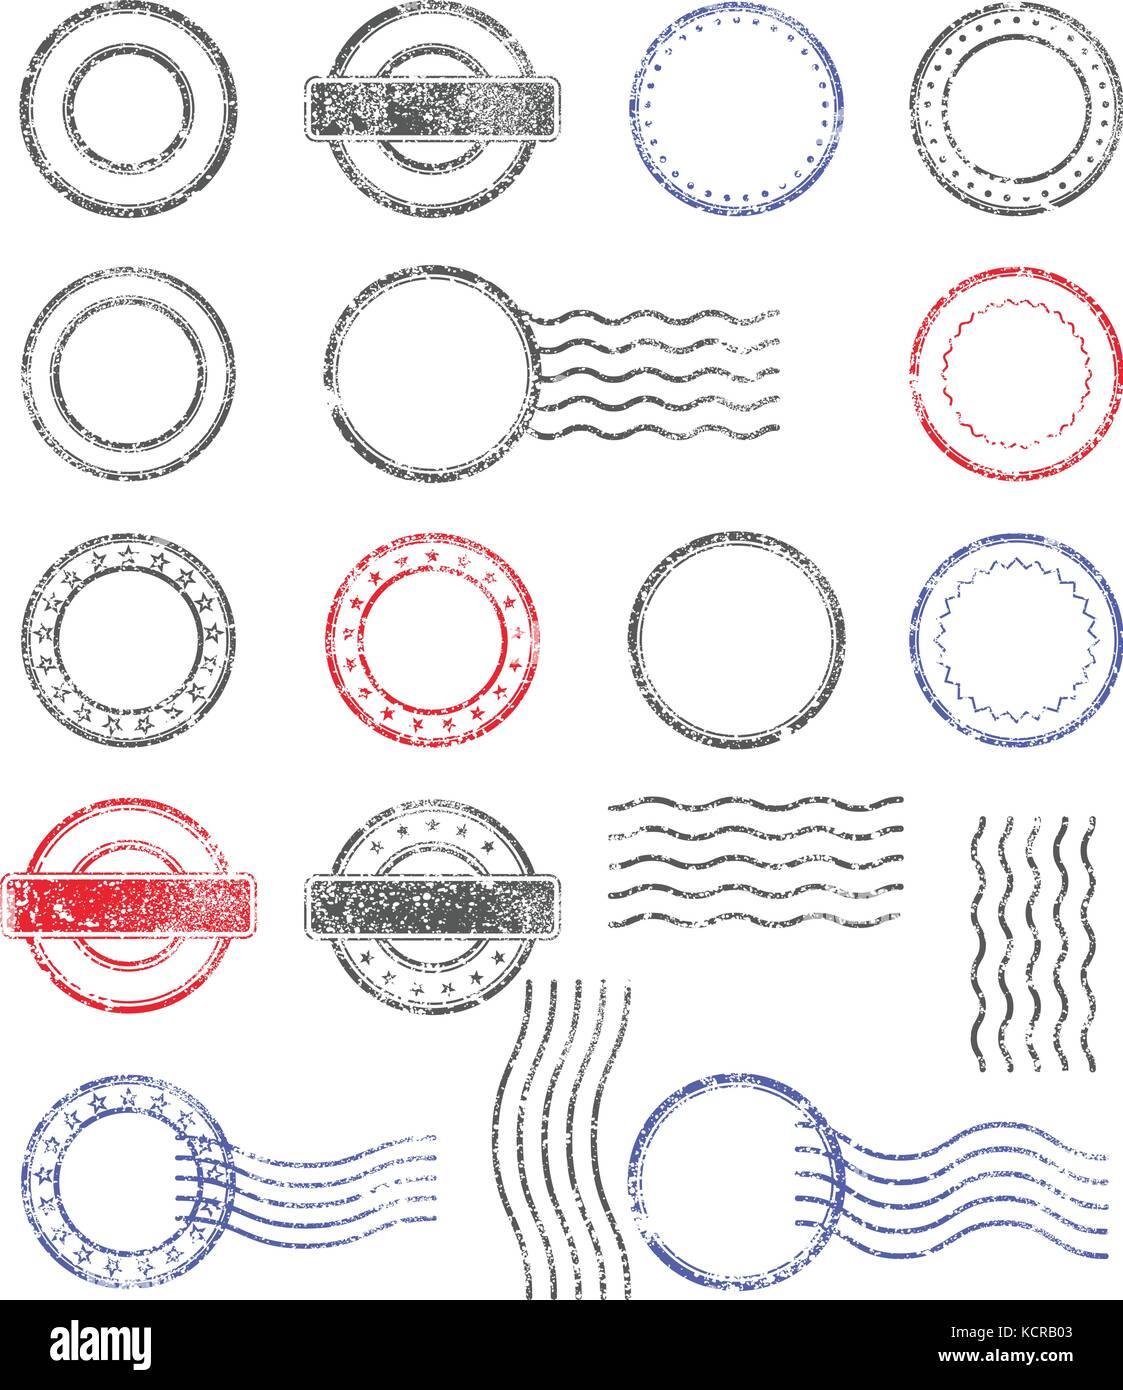 Blank templates of shabby postal stamps of round shape - Stock Vector